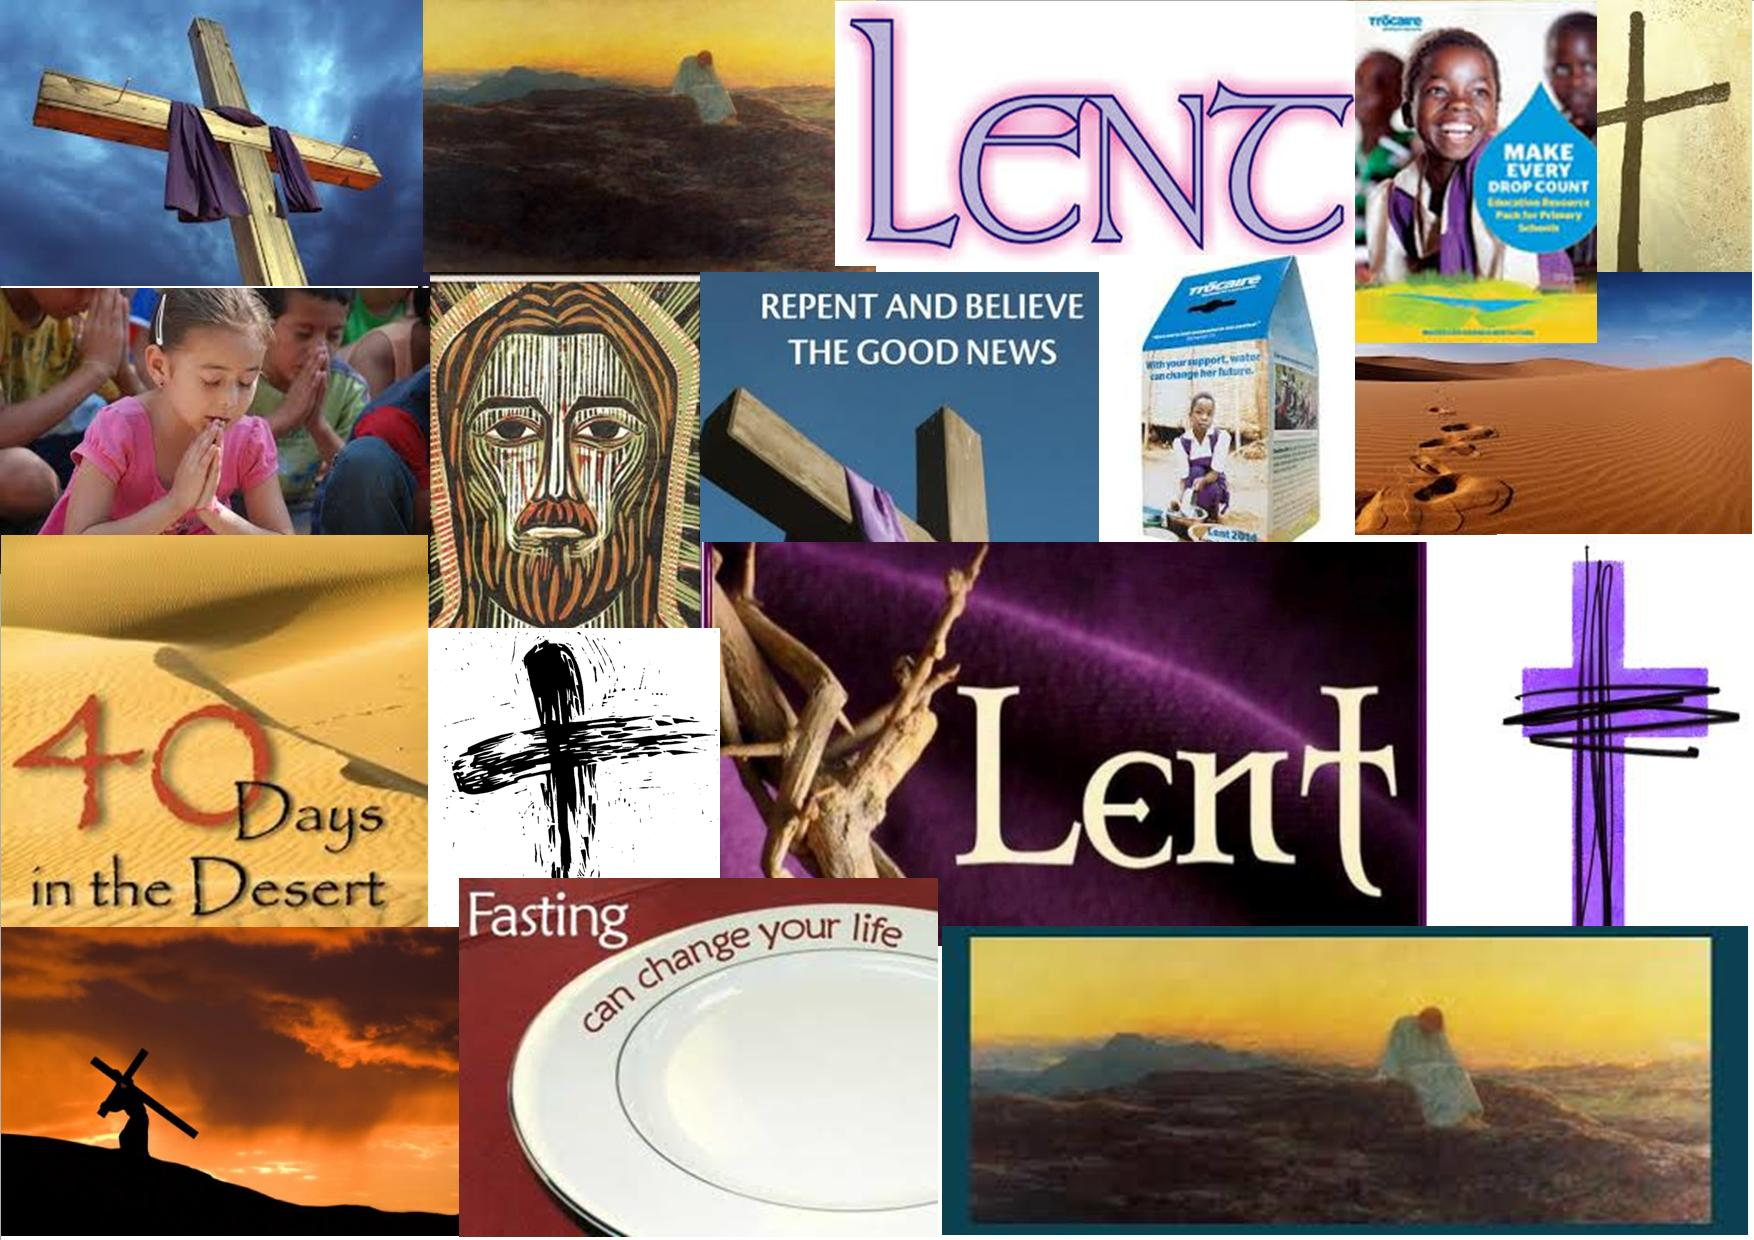 Facebook timeline image for Lent